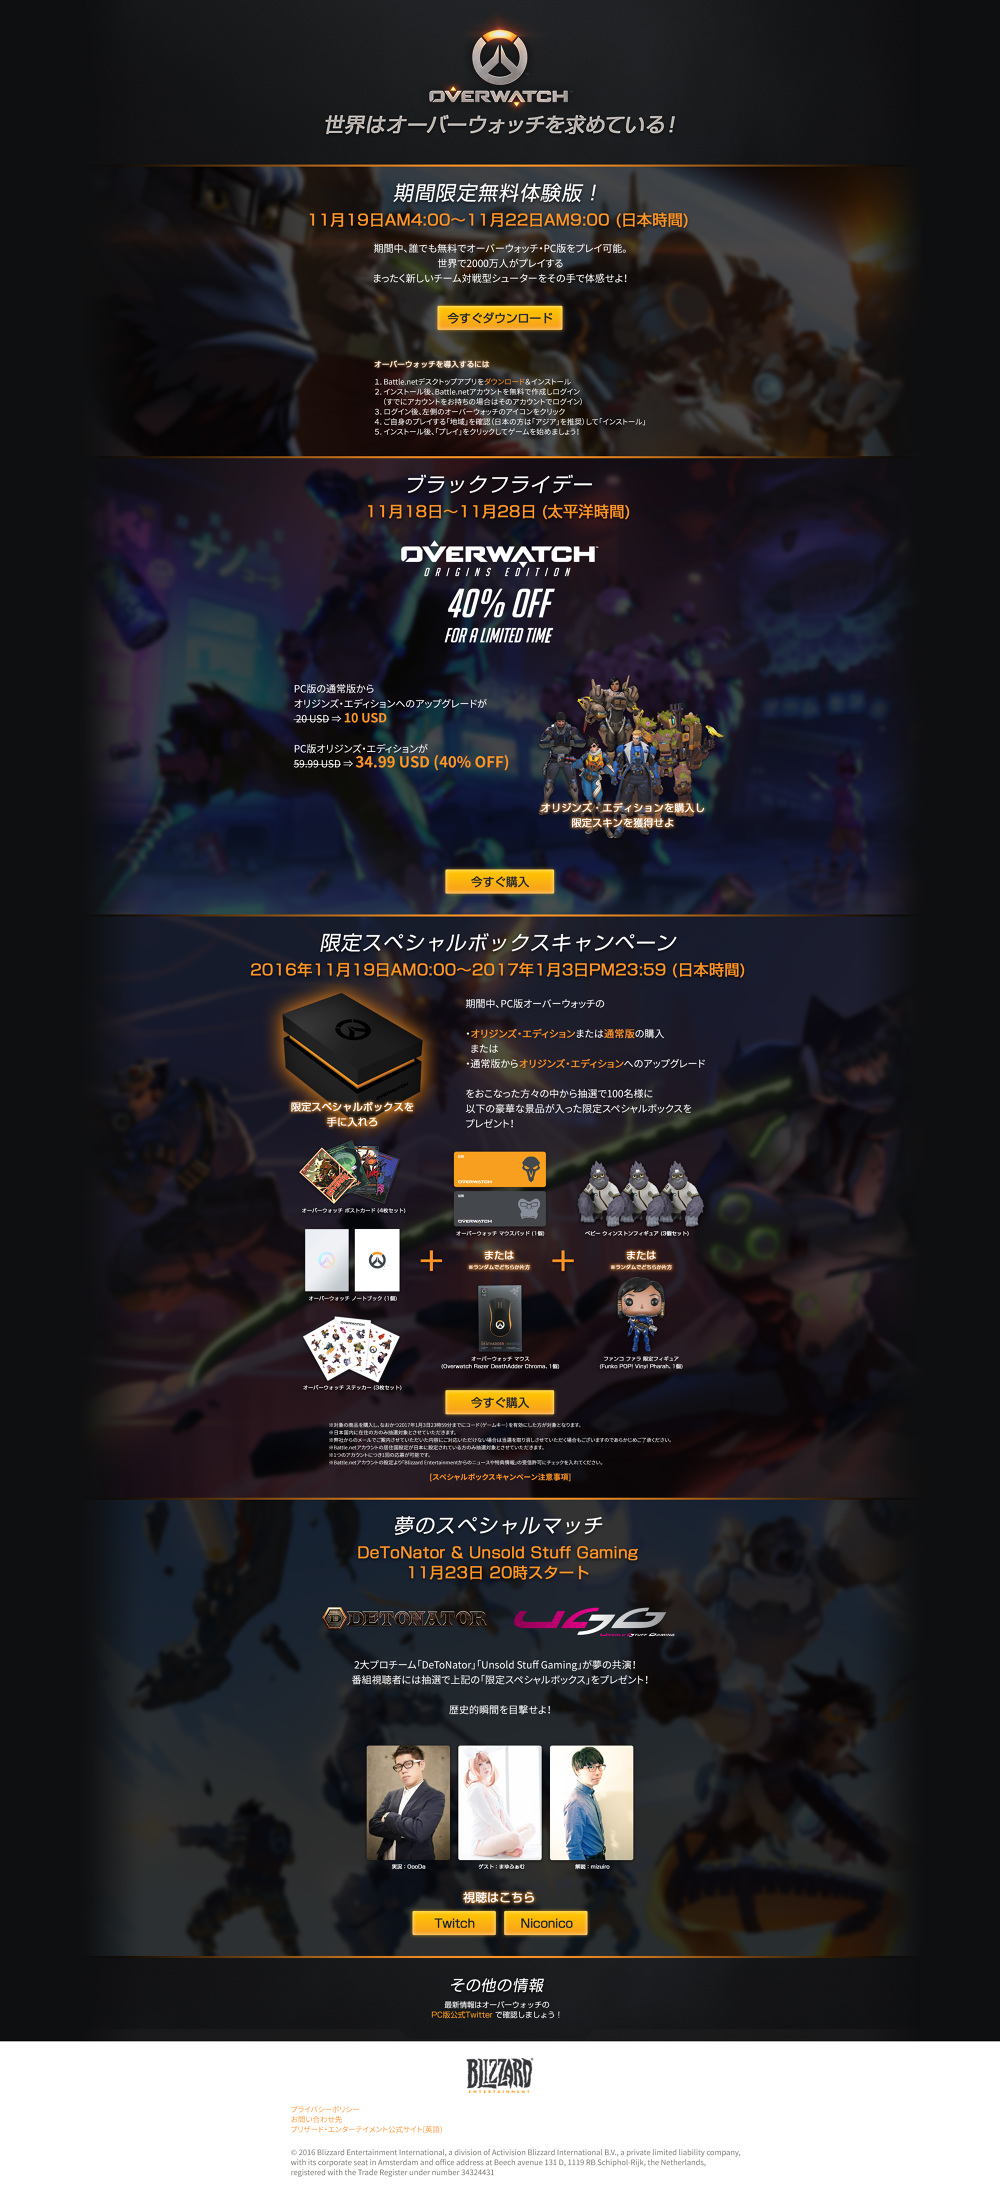 overwatch japan black friday sale lucky draw free trial